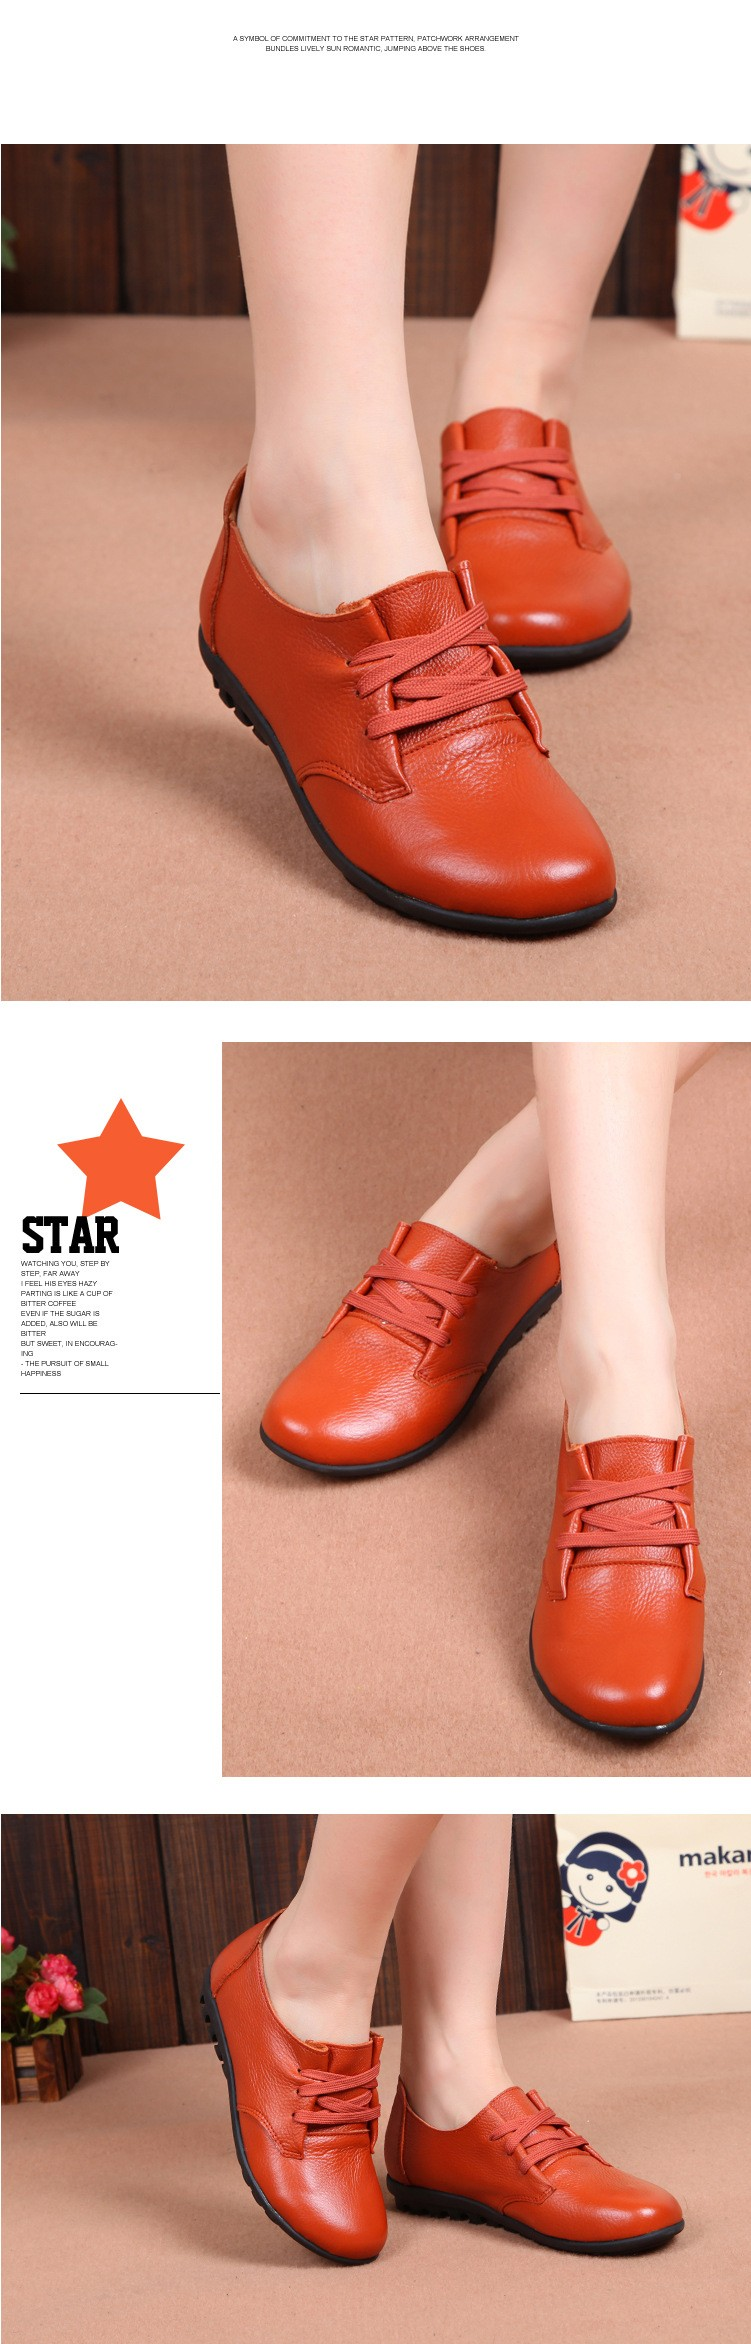 women shoes new genuine leather mother shoes casual lace up flats shoes woman moccasins ballets flats zapatas mujer 2016 DT188 (5)